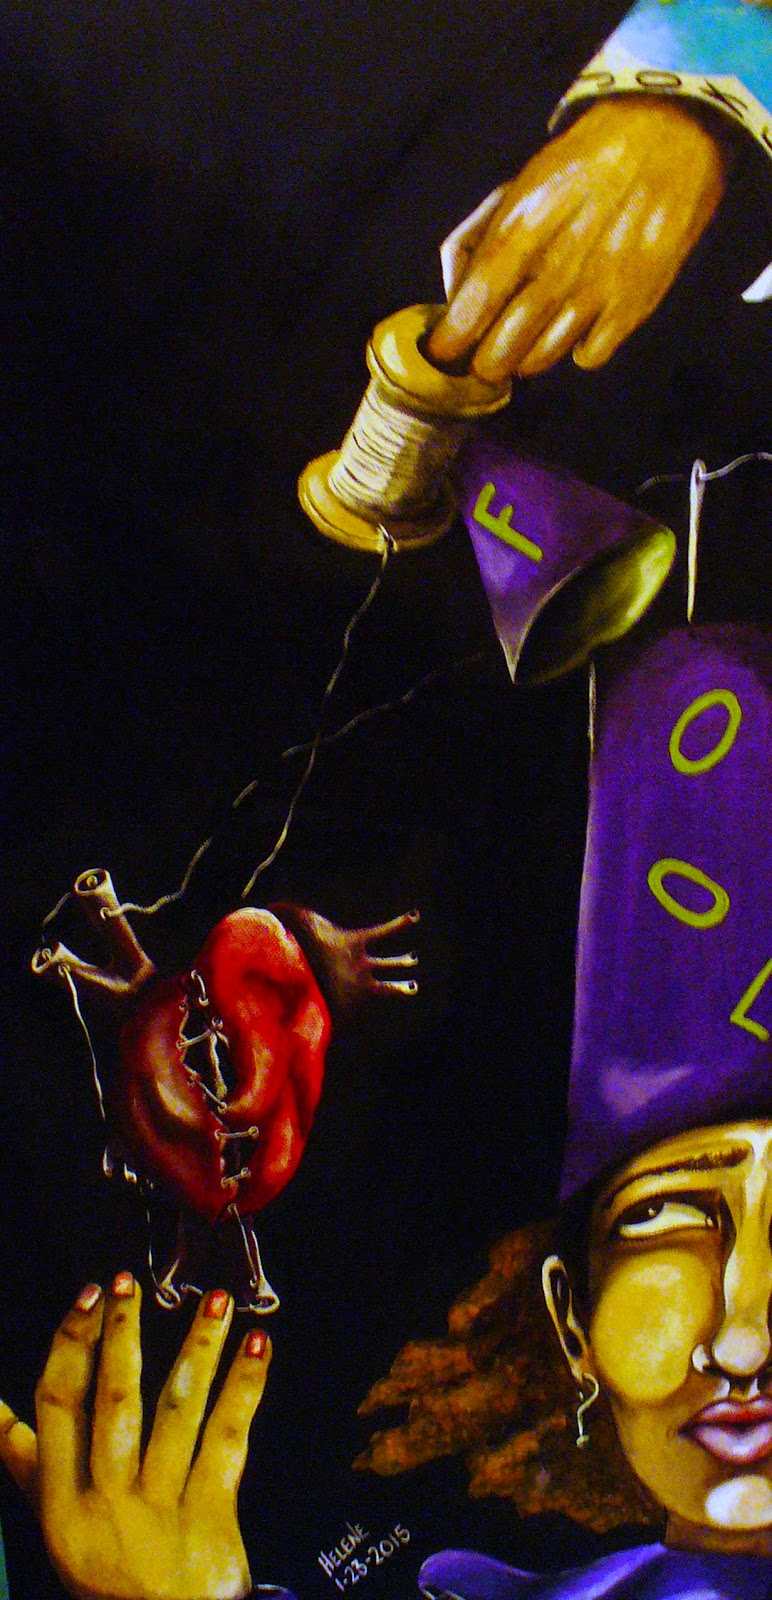 Acrylic figurative painting of woman wearing fools cap reaching for her heart that is caught in string attached to spool. Predominantly purple color with black background.